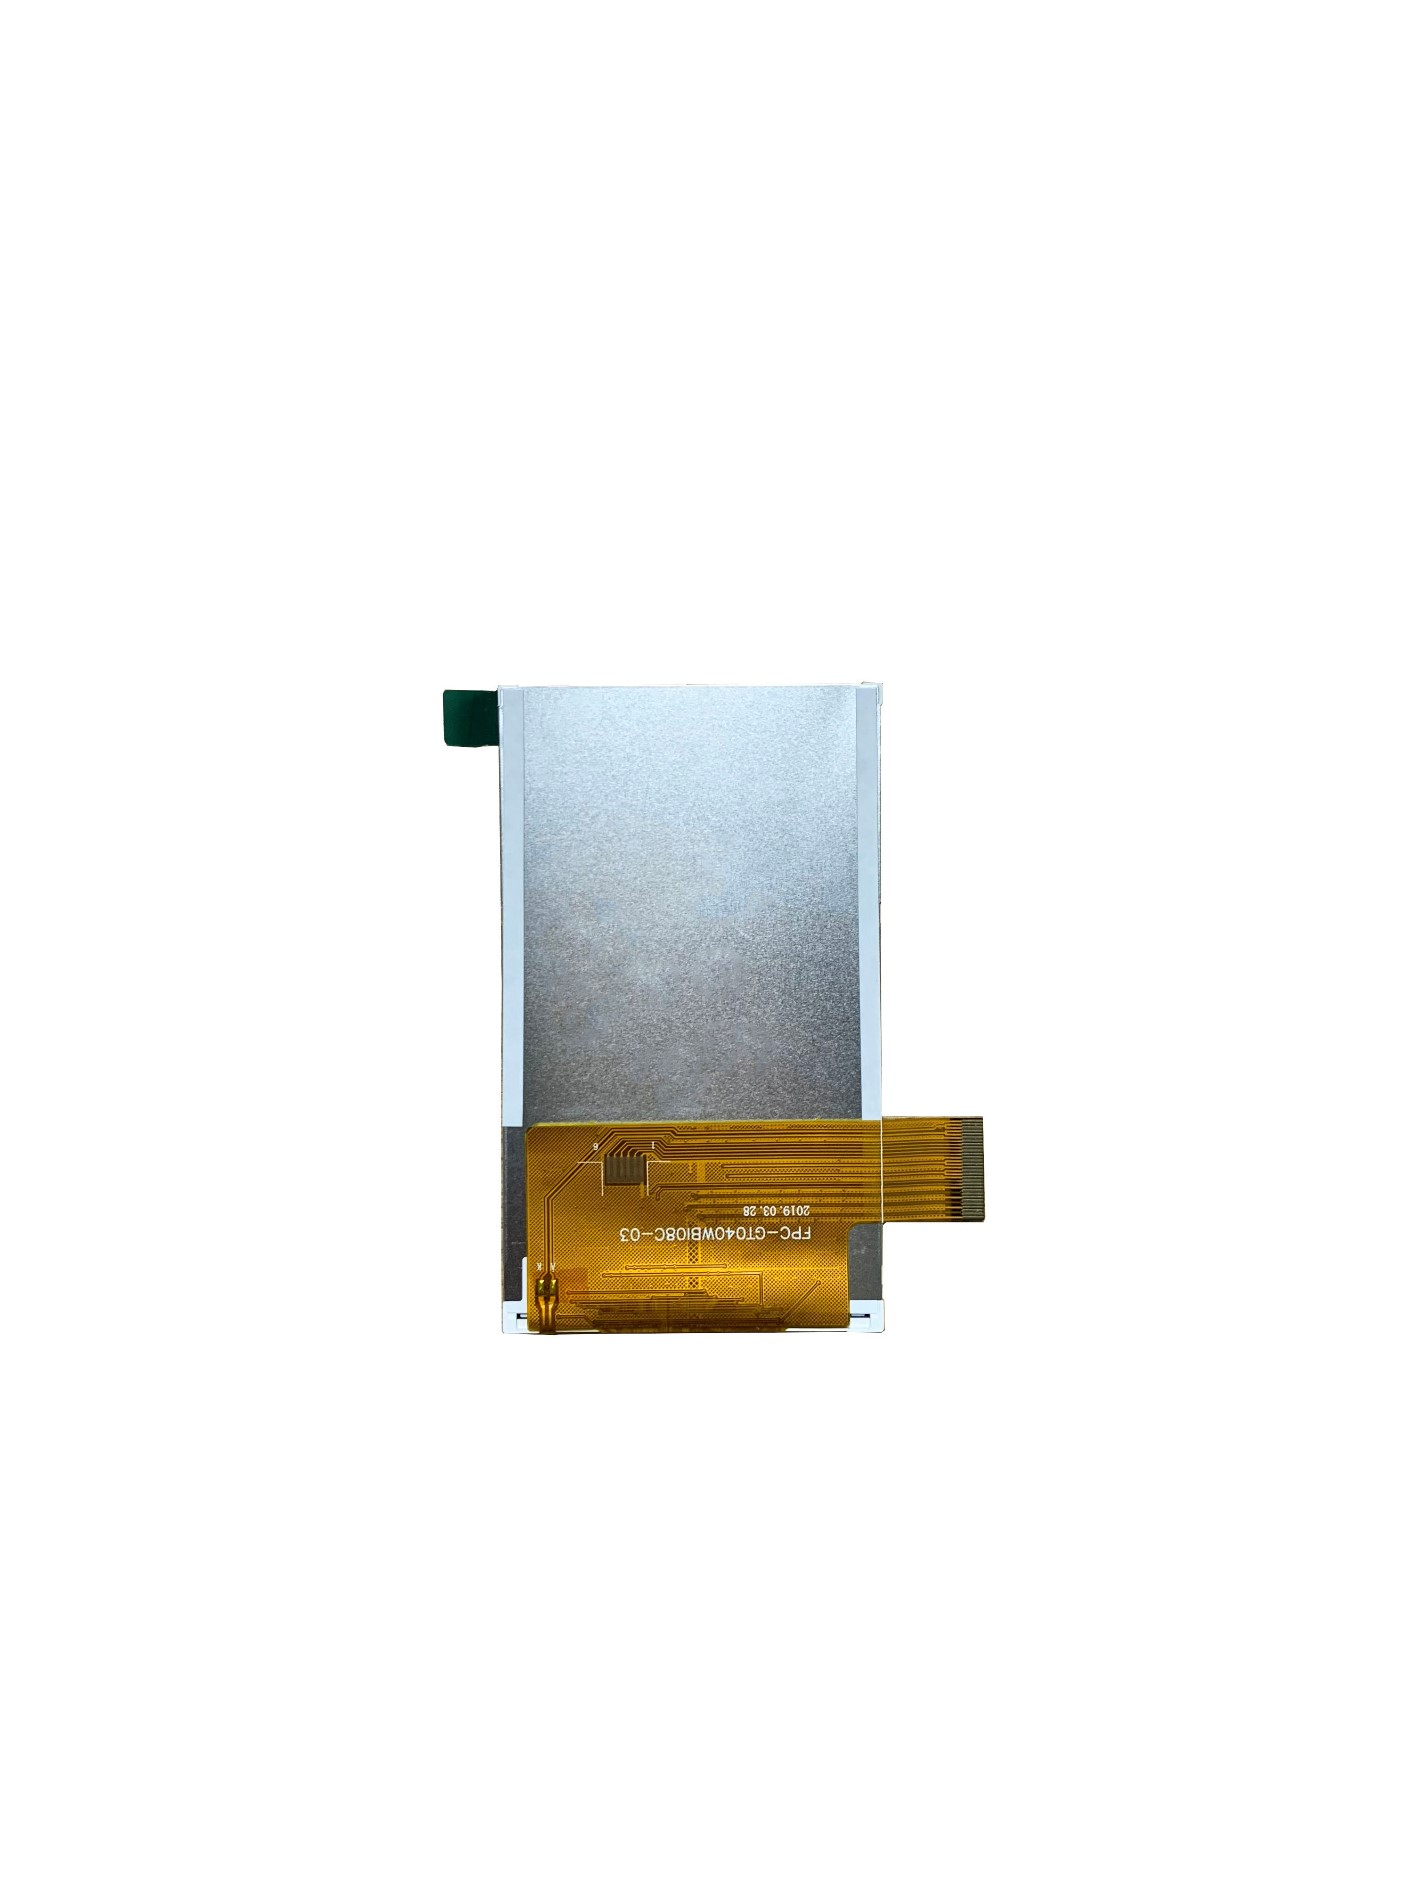 Custom China 4.0 Mipi Dsi Interface 480x800 Lcd Display, 4.0 Mipi Dsi Interface 480x800 Lcd Display Factory, 4.0 Mipi Dsi Interface 480x800 Lcd Display OEM